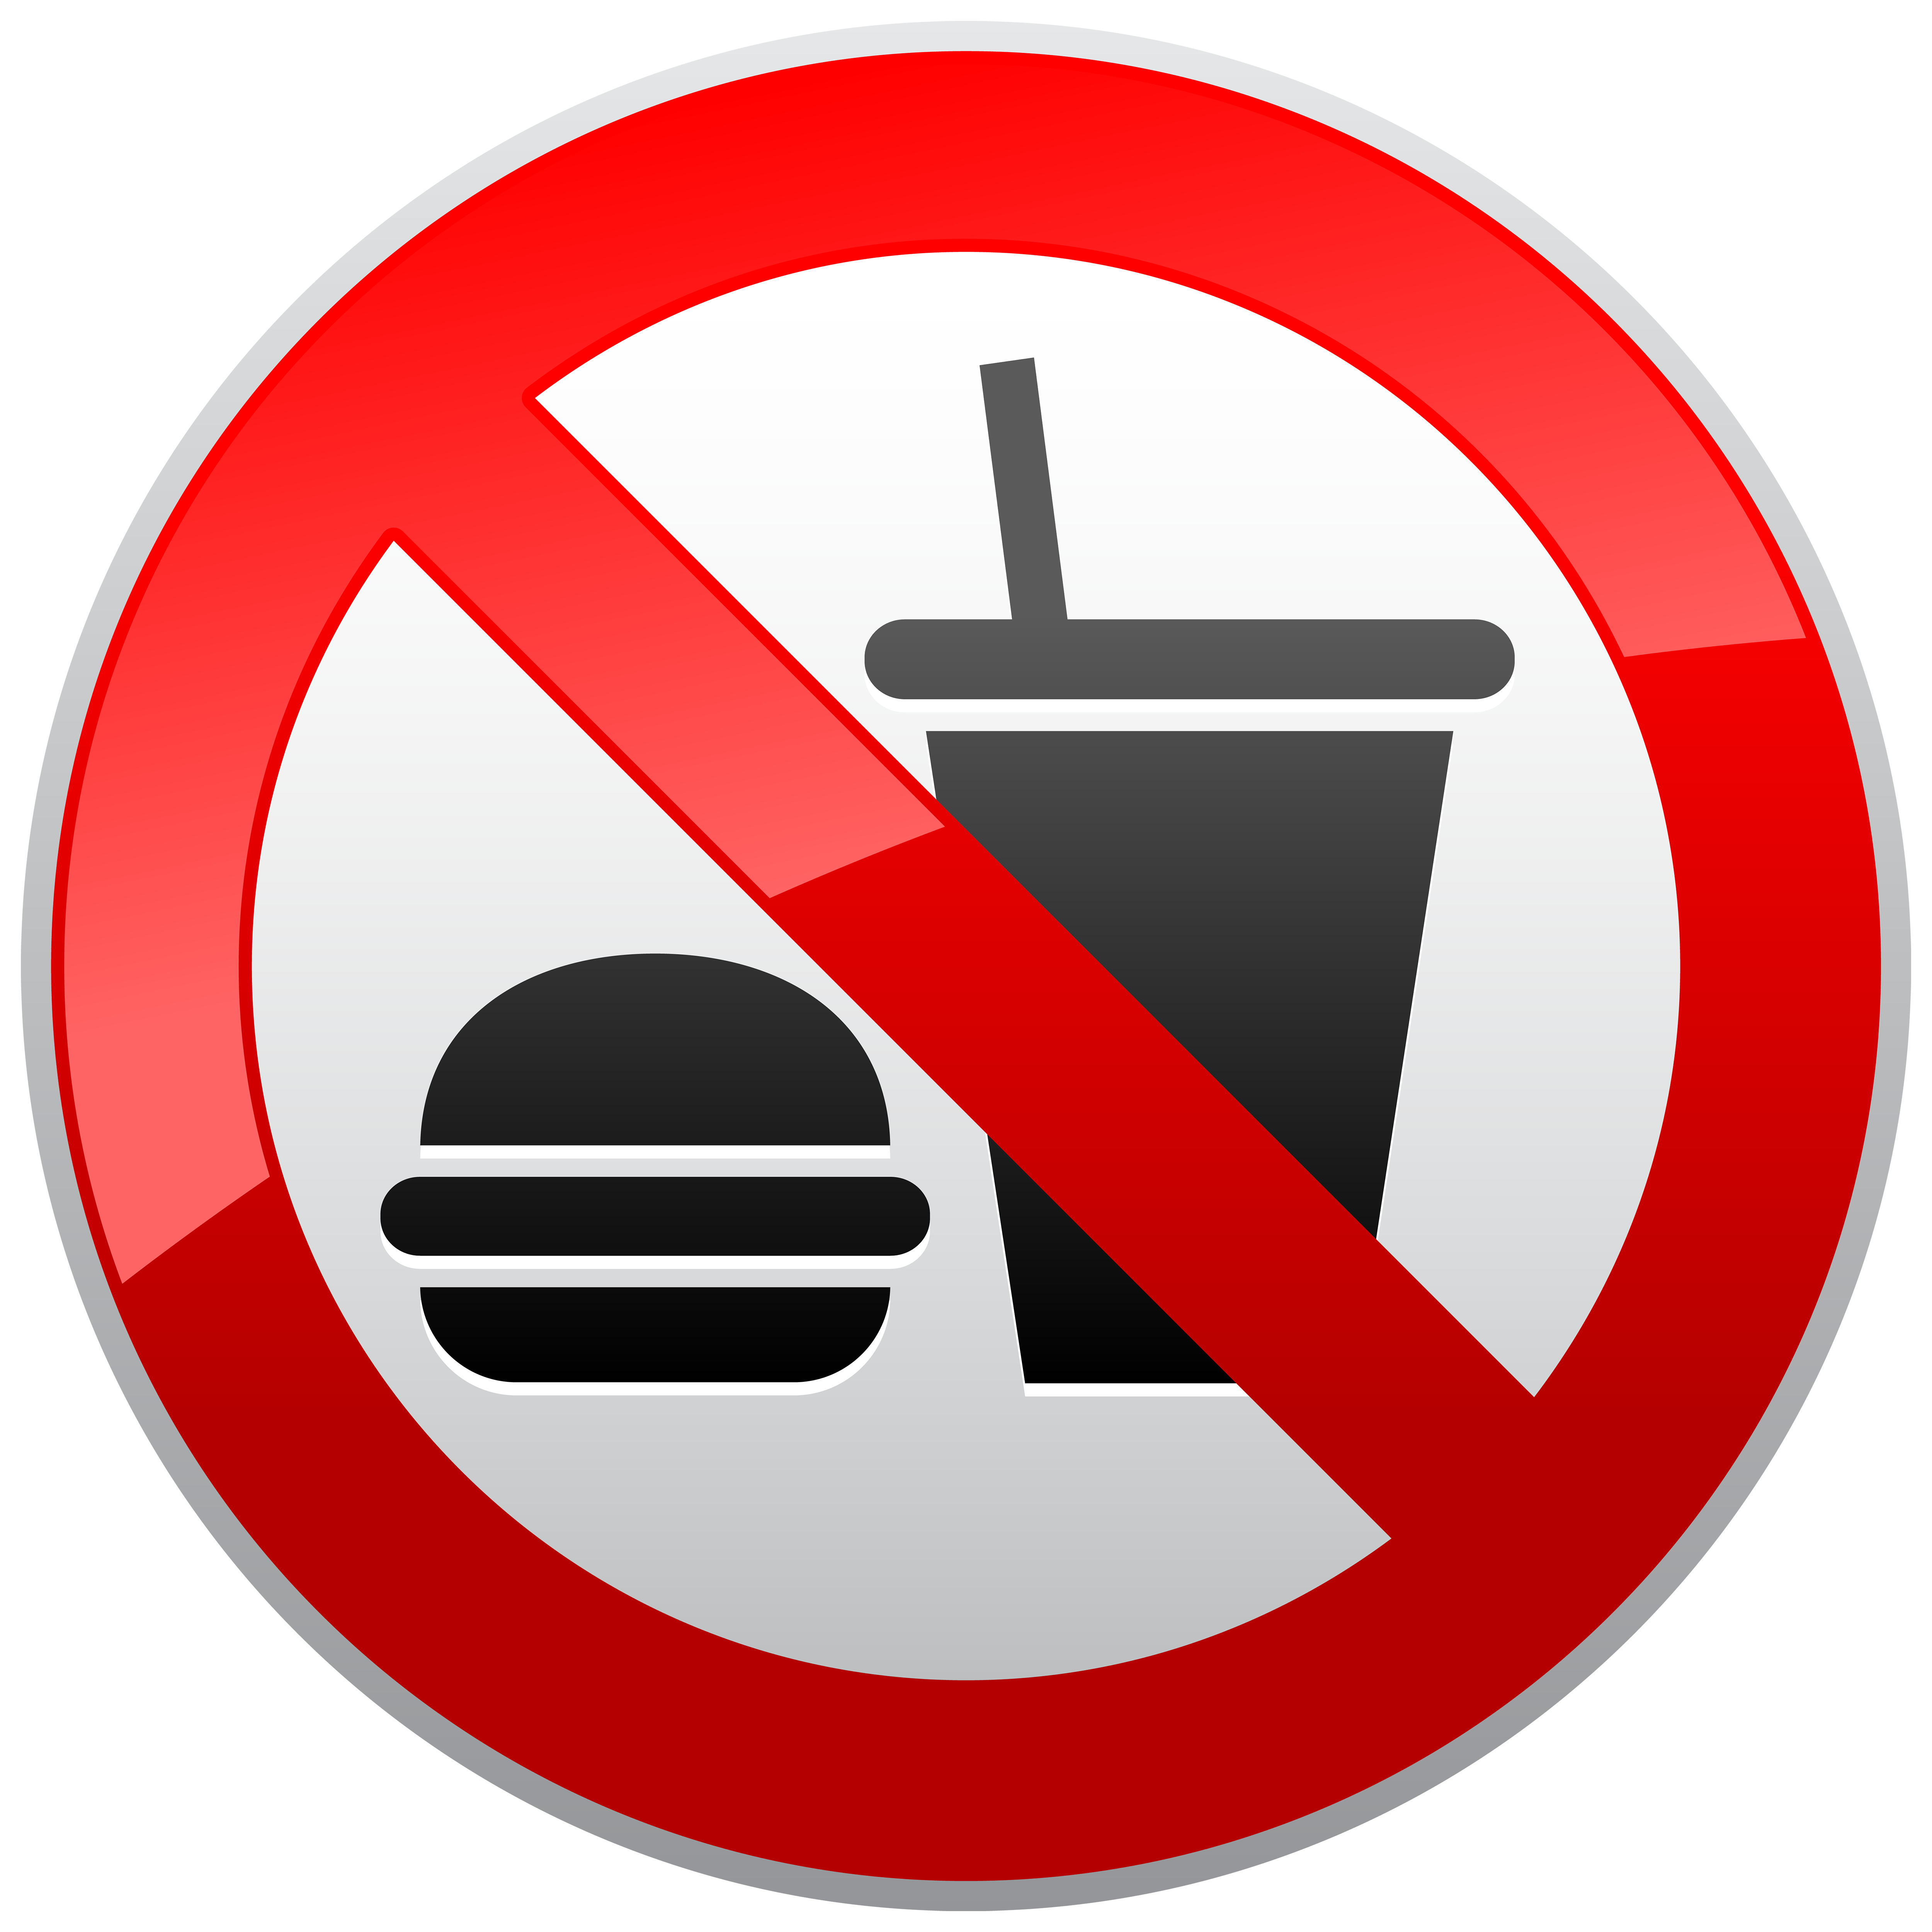 No Sign Png - No Eating or Drinking Prohibition Sign PNG Clipart - Best WEB Clipart